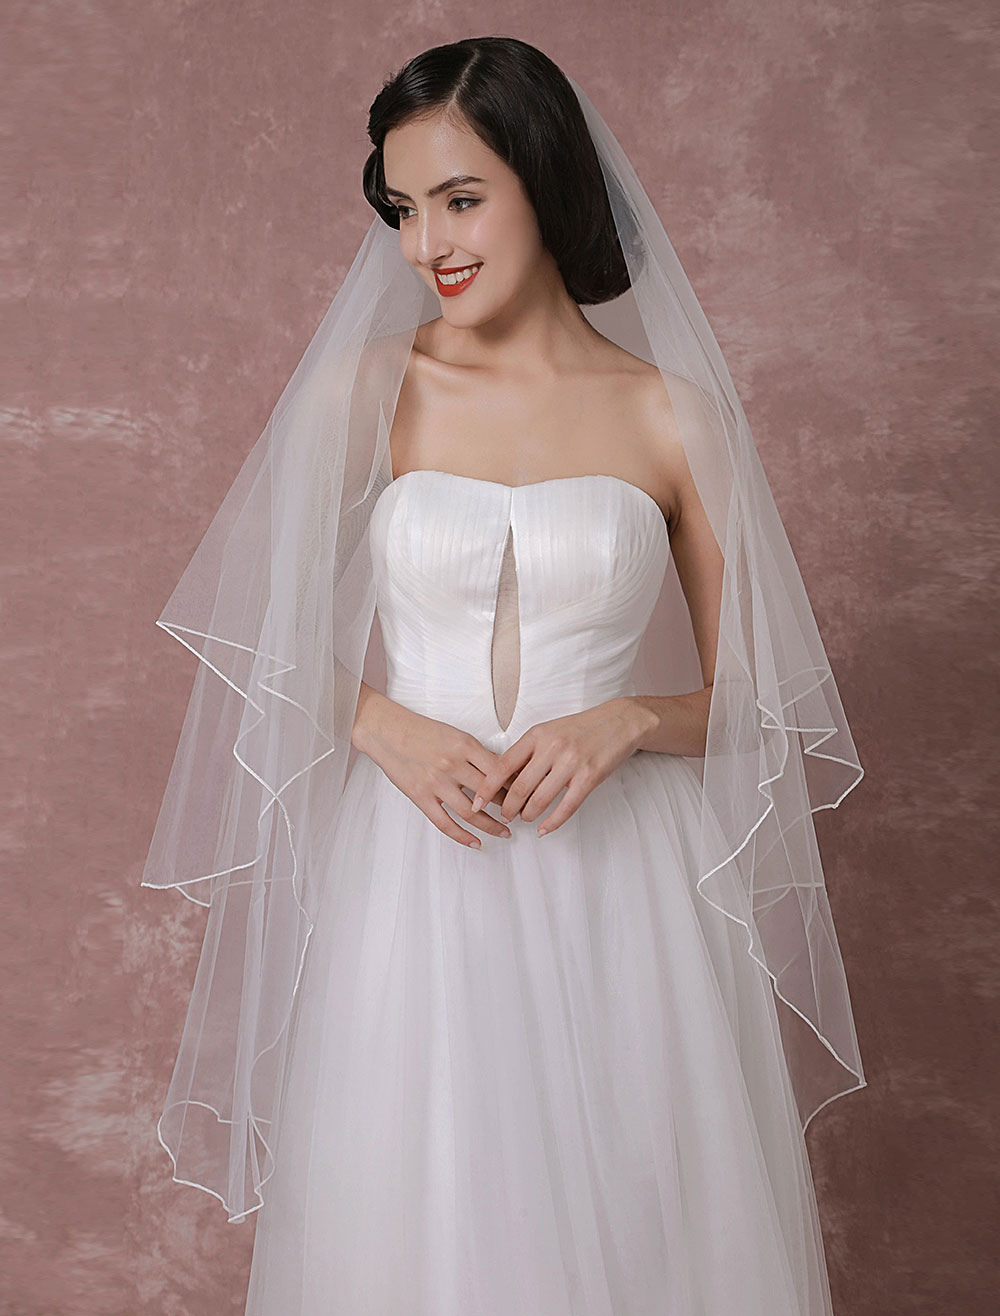 Buy White Wedding Veil Classic Tulle Two Tier Finished Edge Bridal Veil for $18.04 in Milanoo store